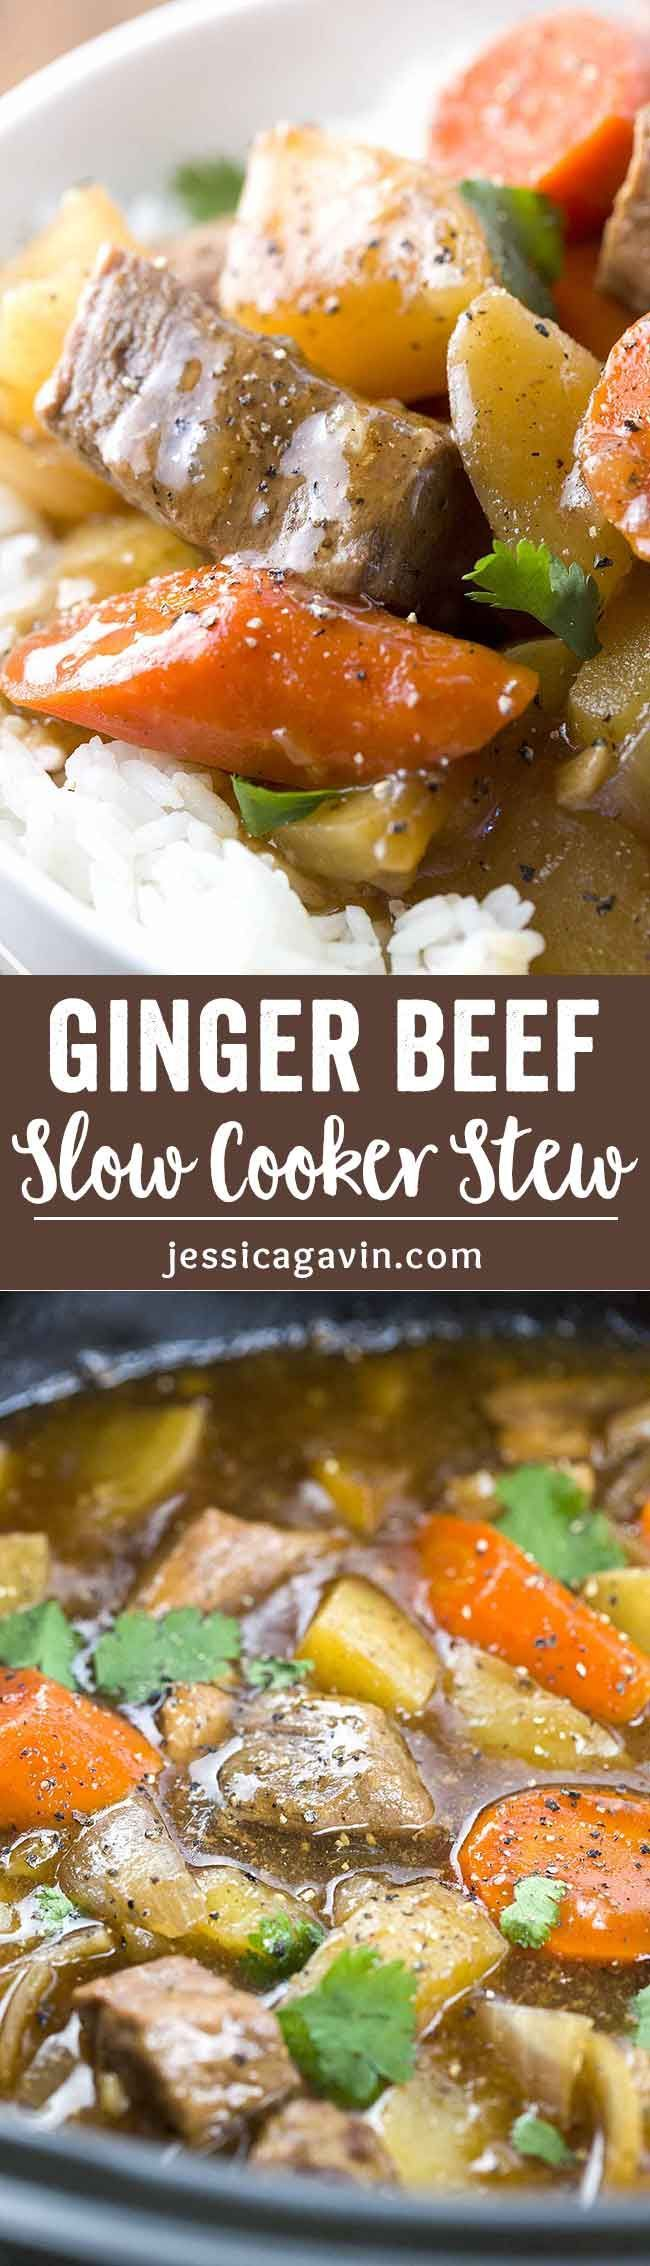 Grandma's Ginger Beef Stew Recipe - A savory ginger beef stew recipe inspired by my grandma's home cooking. A great comfort food for the winter time! via @foodiegavin